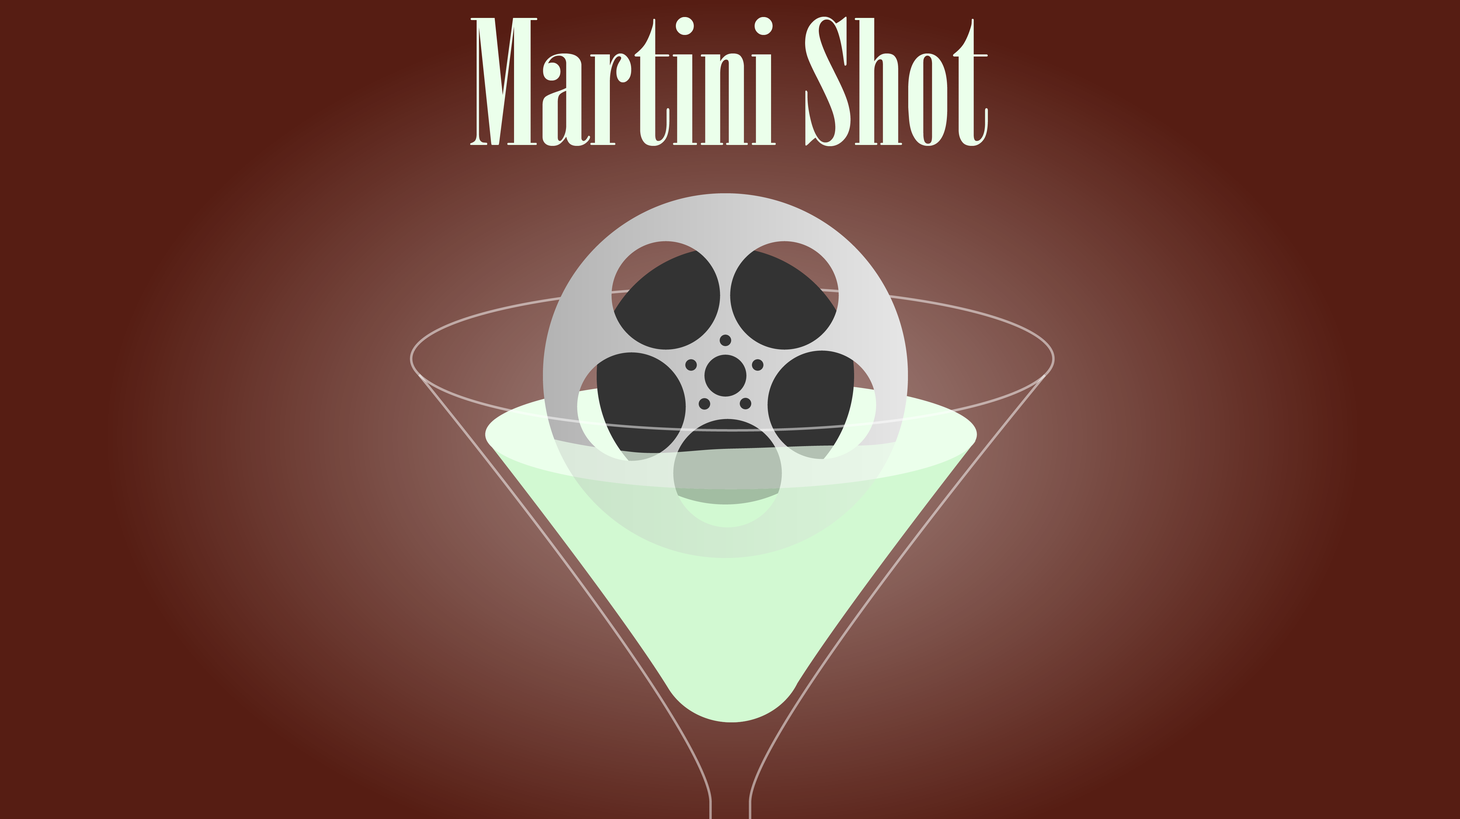 This is Rob Long, and on today's Martini Shot I listen in on a conversation between a writer and someone giving the writer some very tough feedback on the writer's latest script, which the writer is now really regretting having asked for.